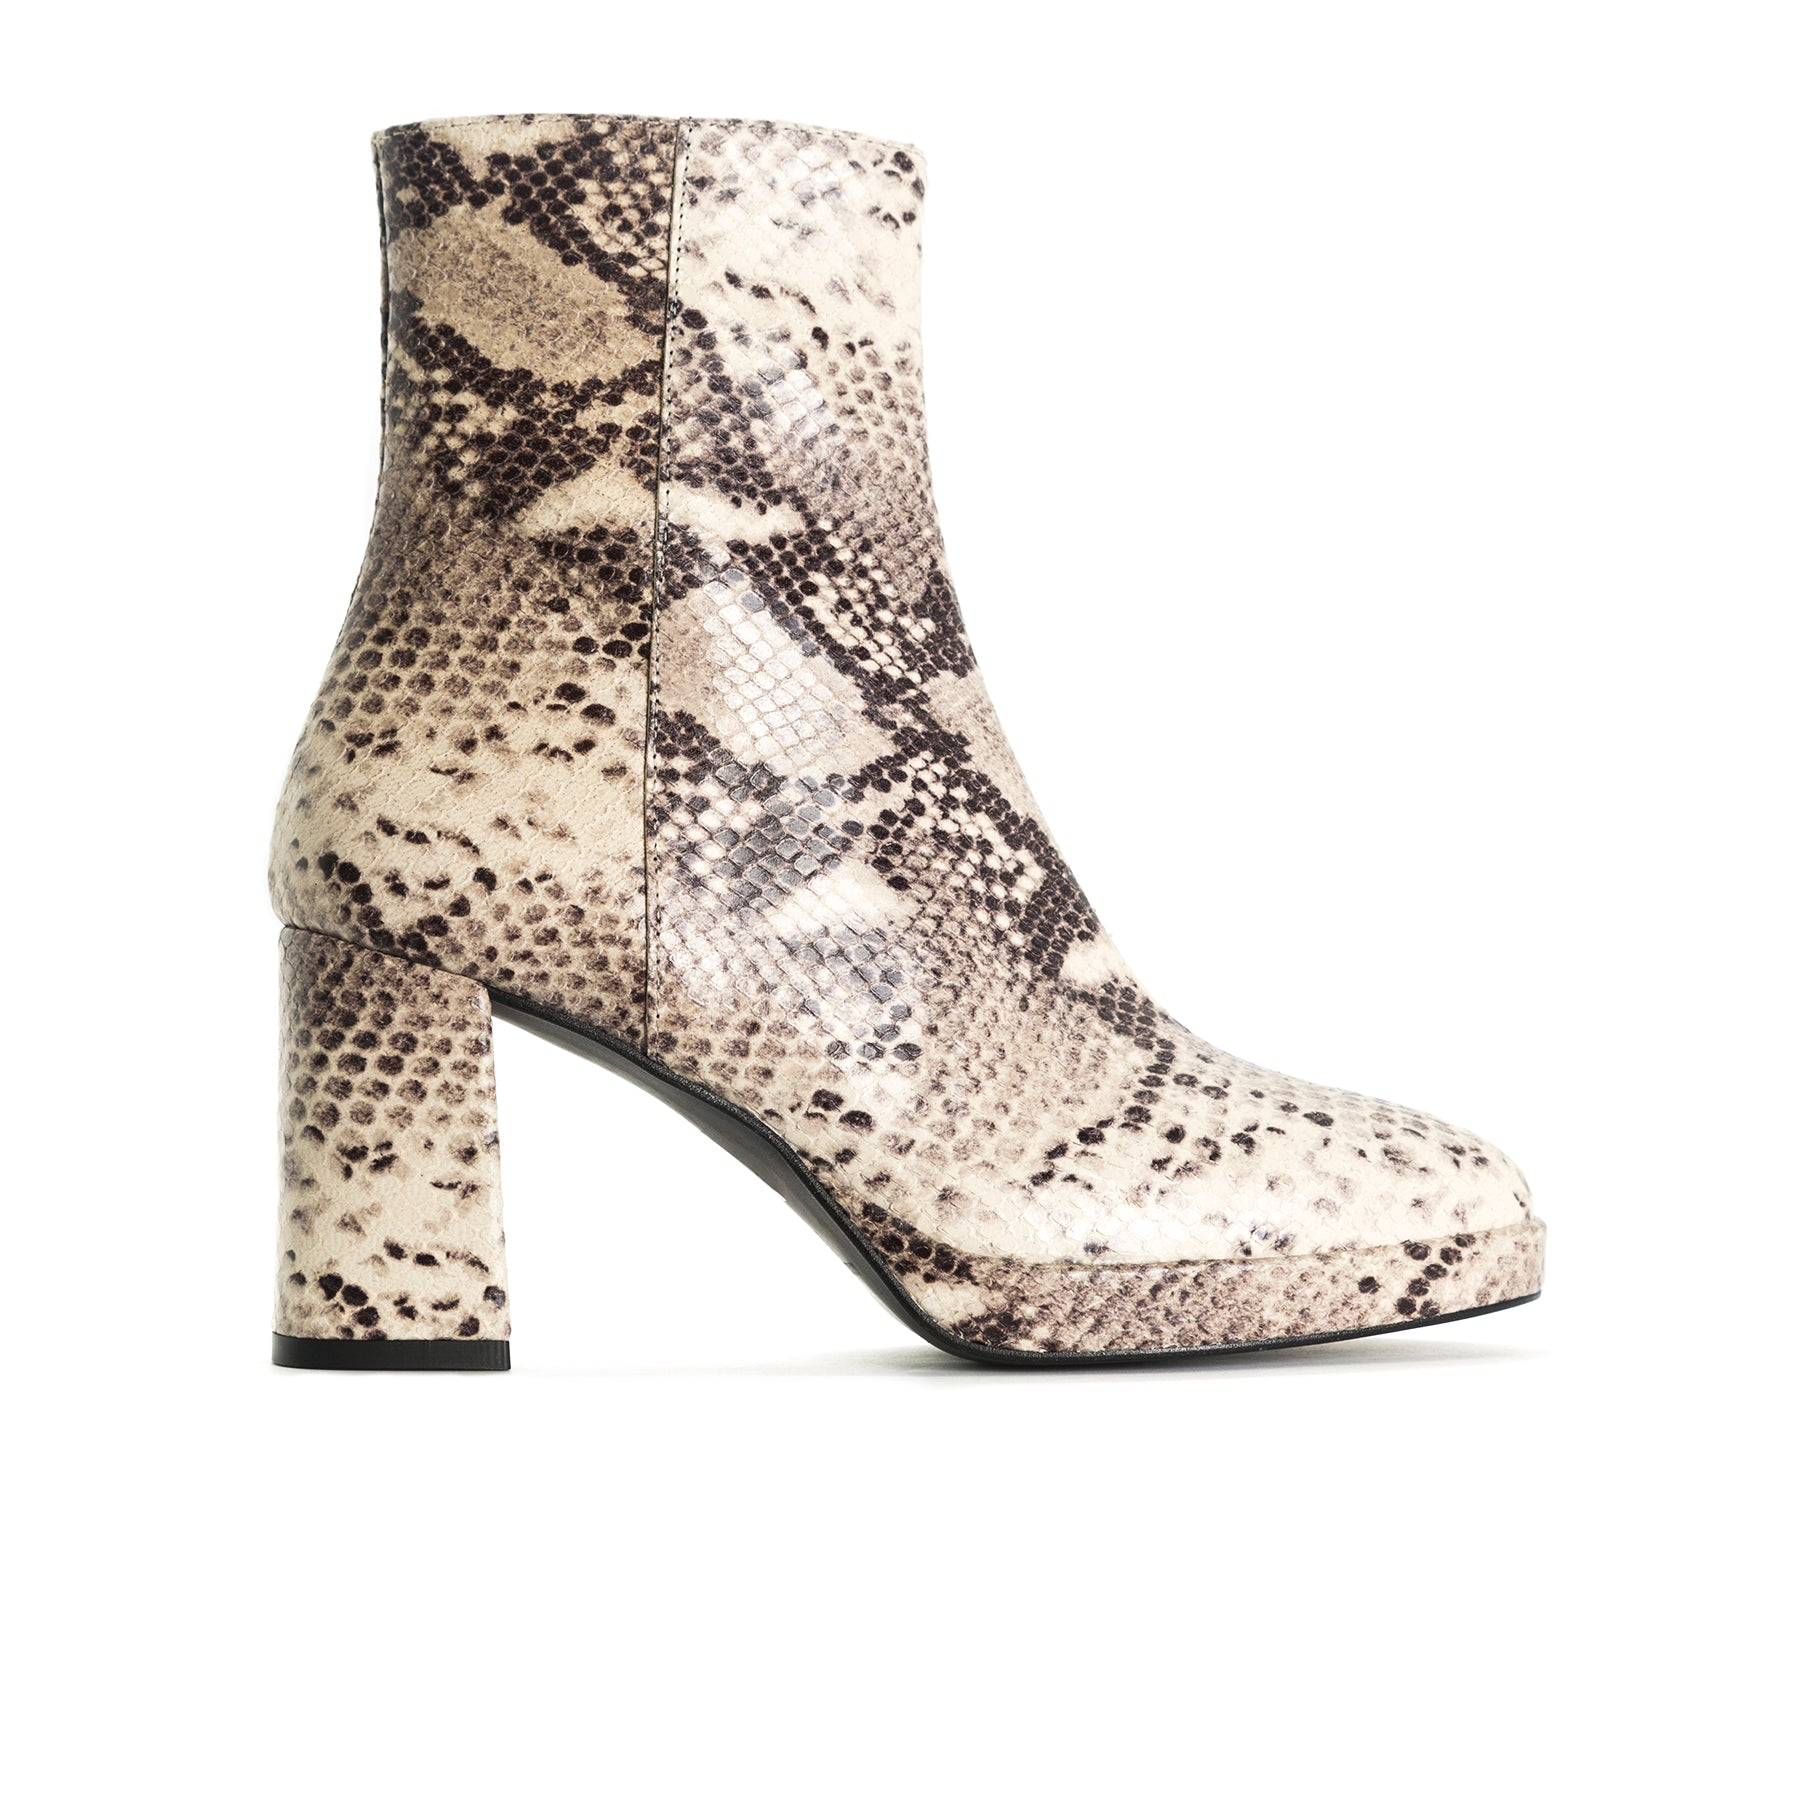 Henessey Nude Snake Leather Booties